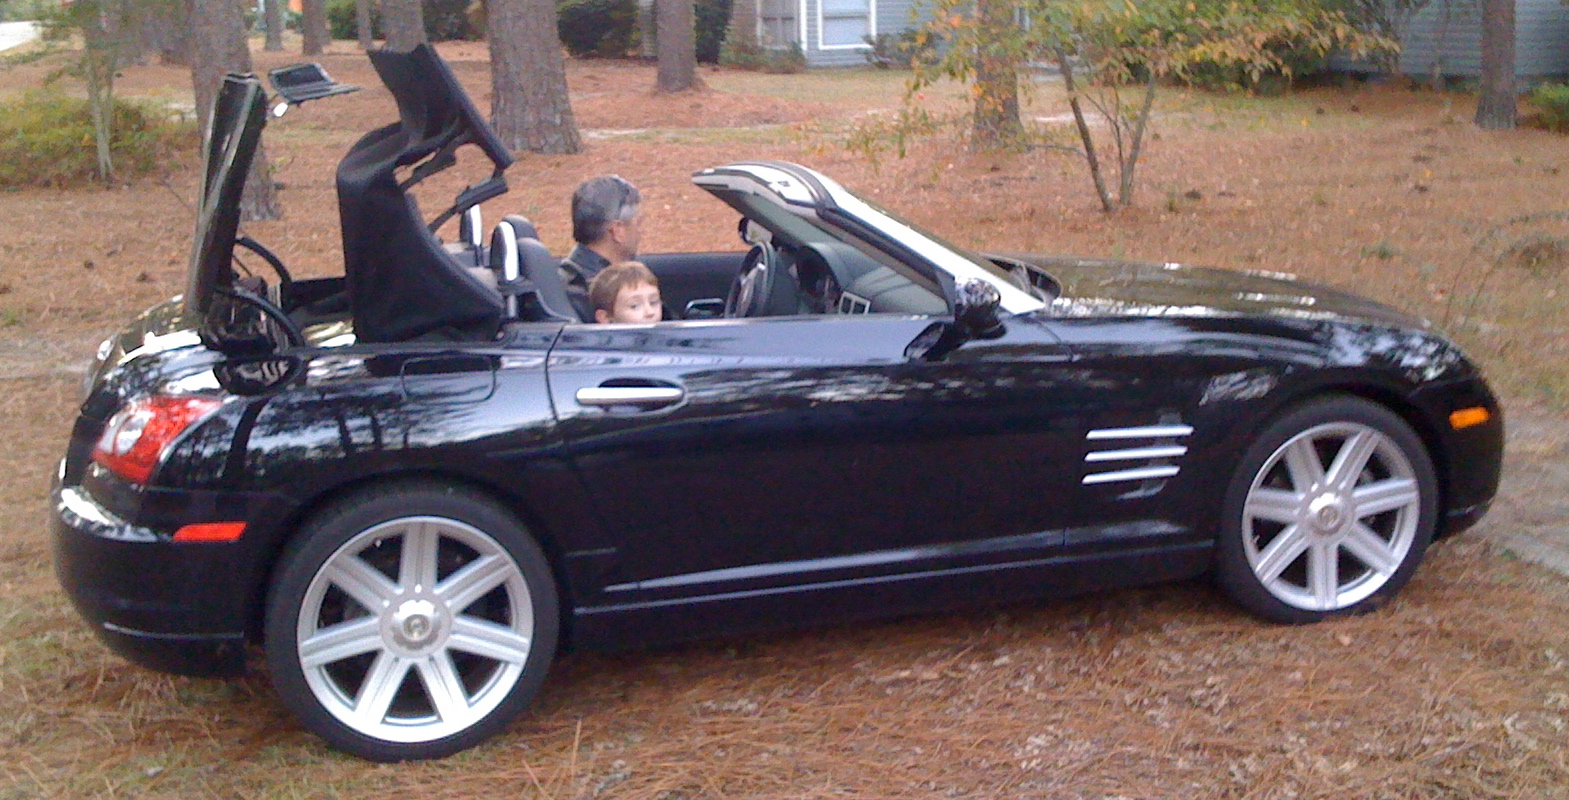 File:Chrysler Crossfire Convertible Black Autotop